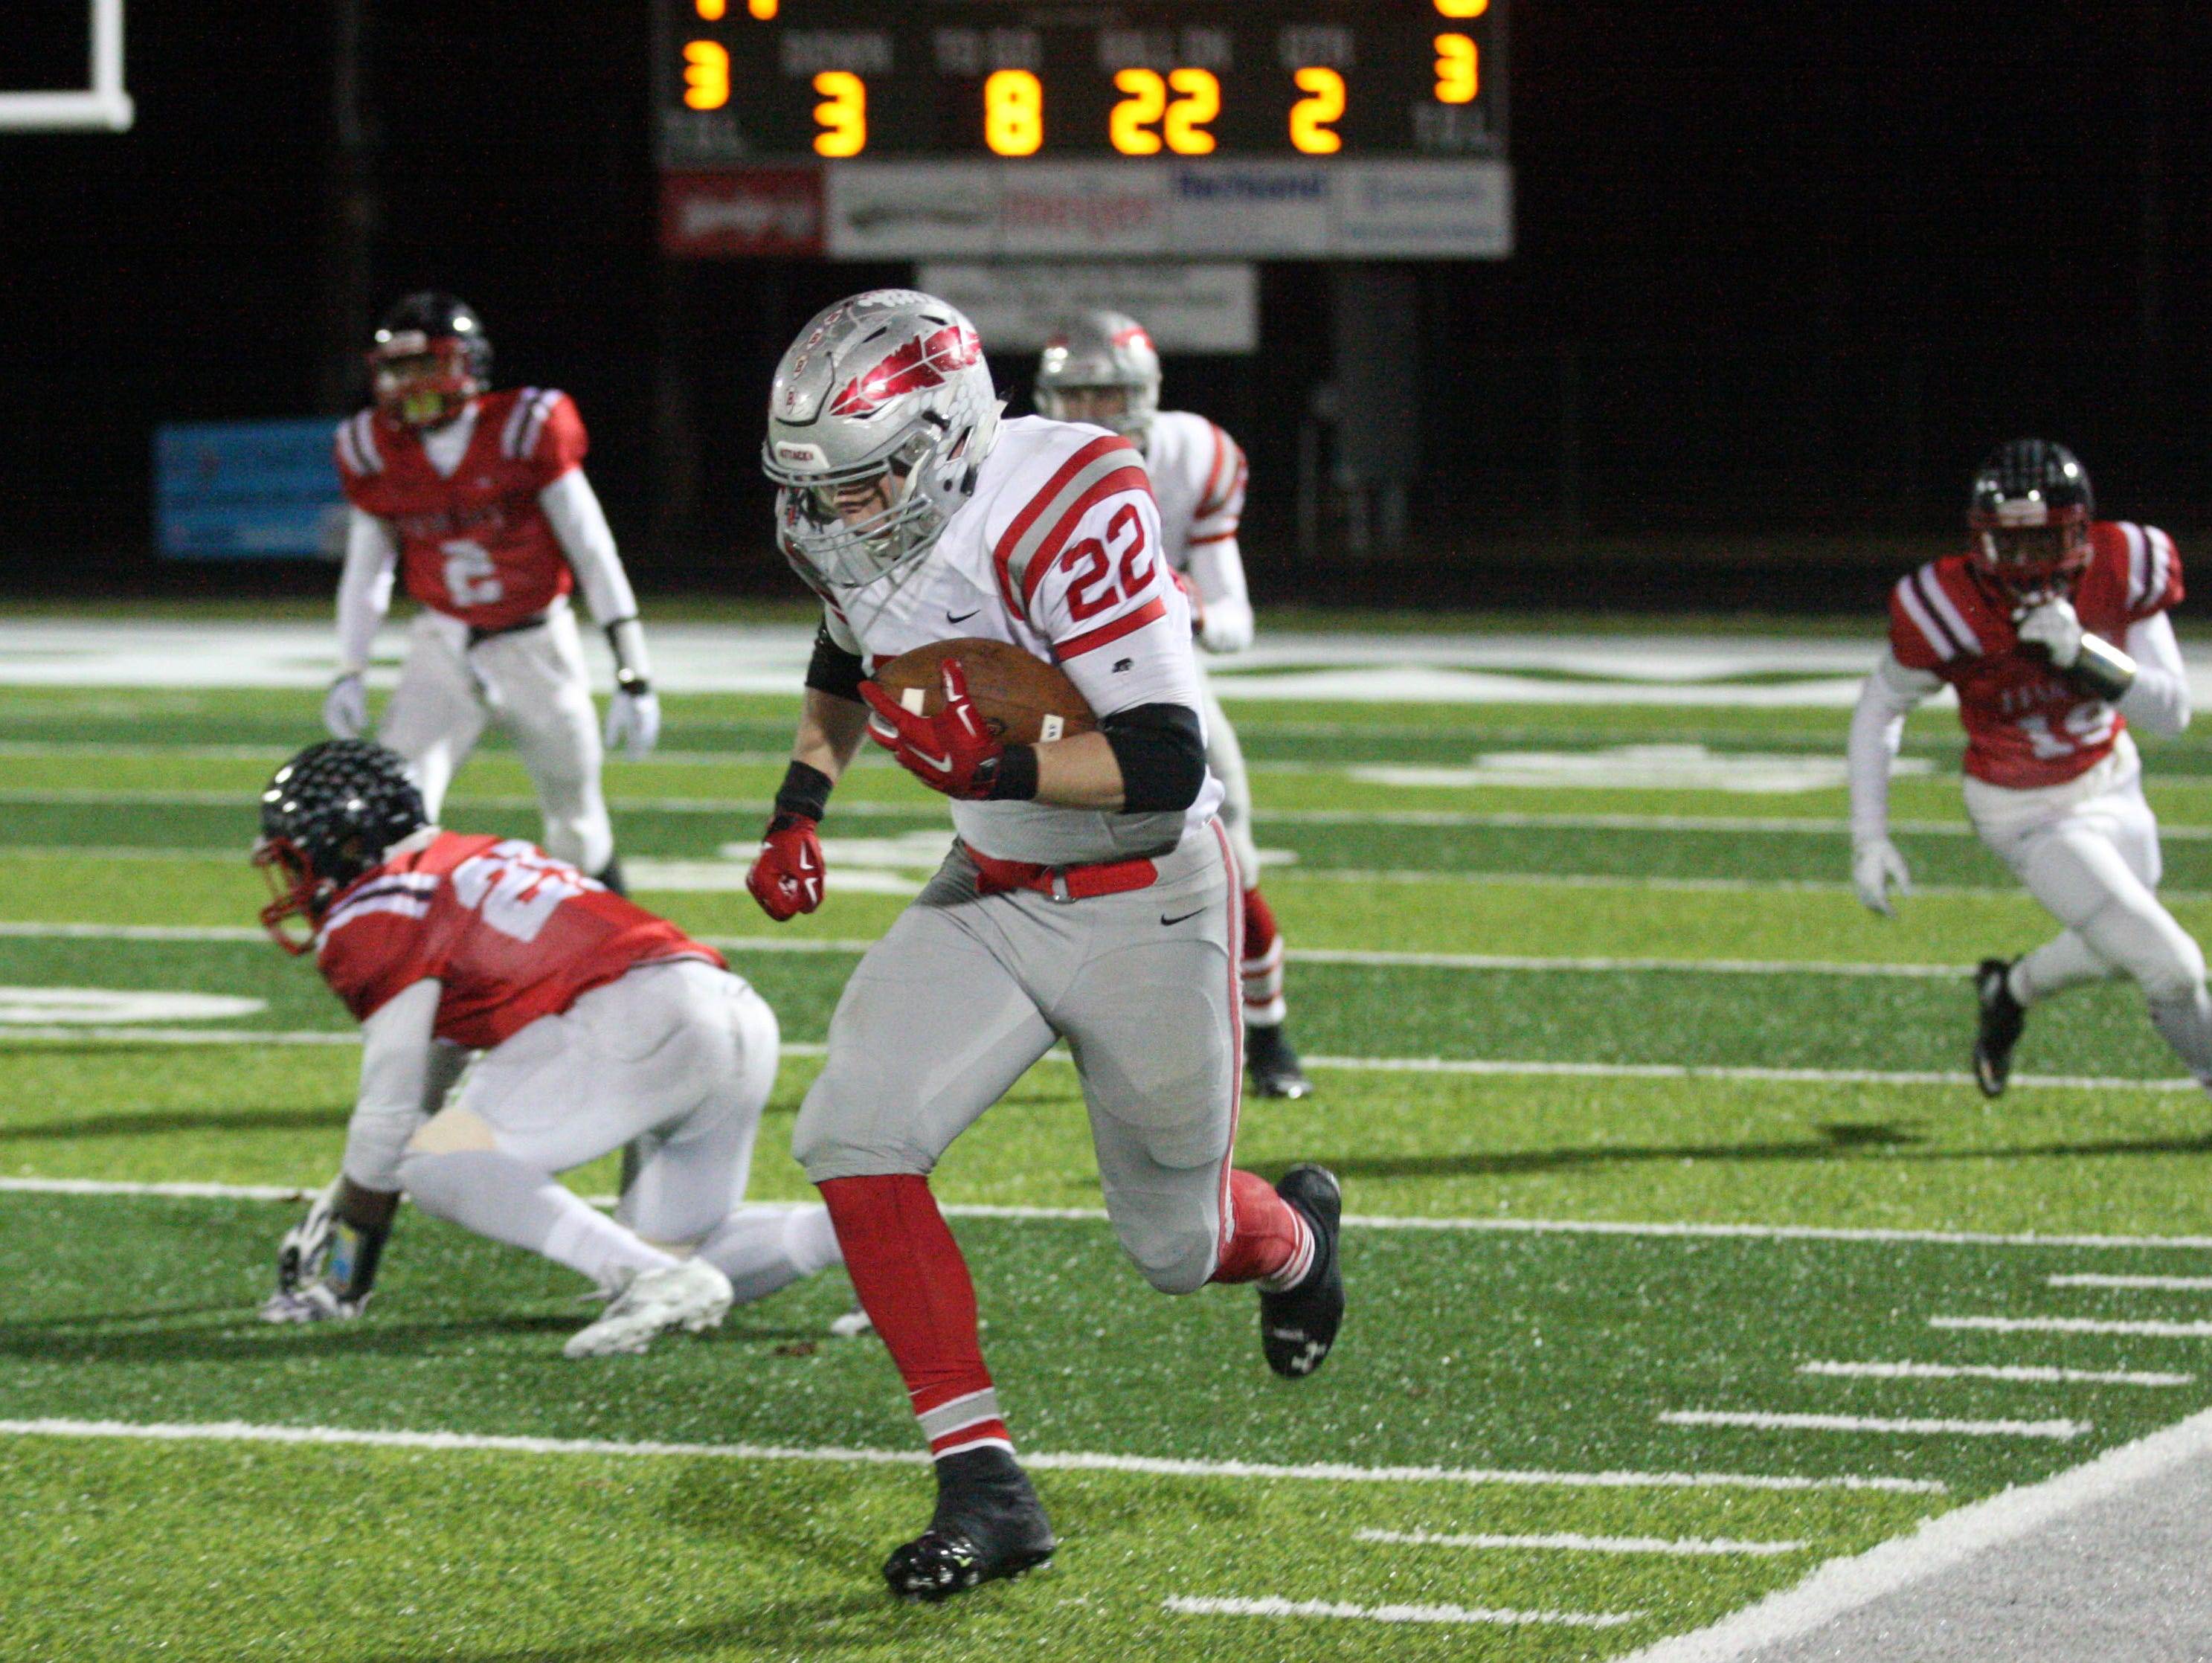 Bellevue's Bryce Ray catches a tipped ball and races 78 yards for a touchdown Saturday.